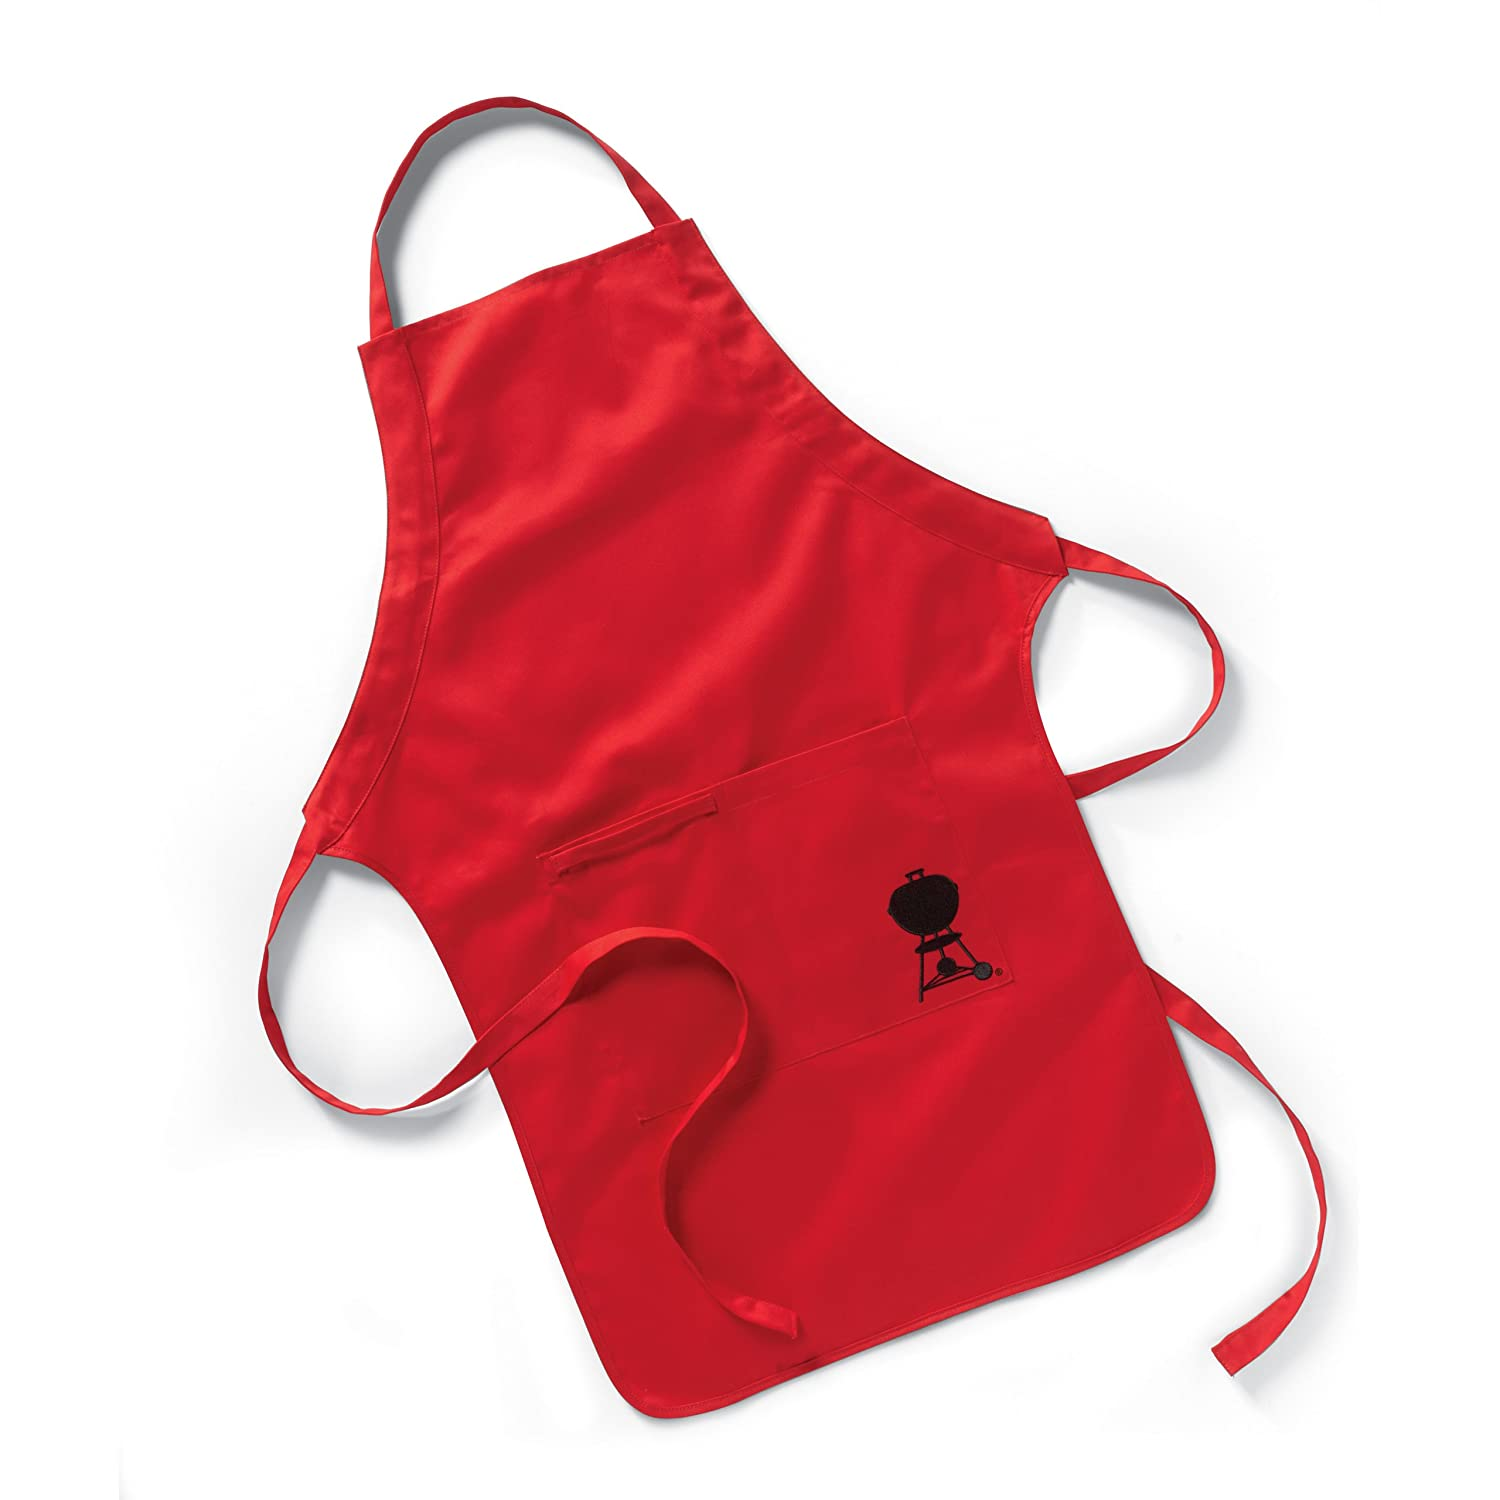 Weber 6476 Barbecue Apron, Red